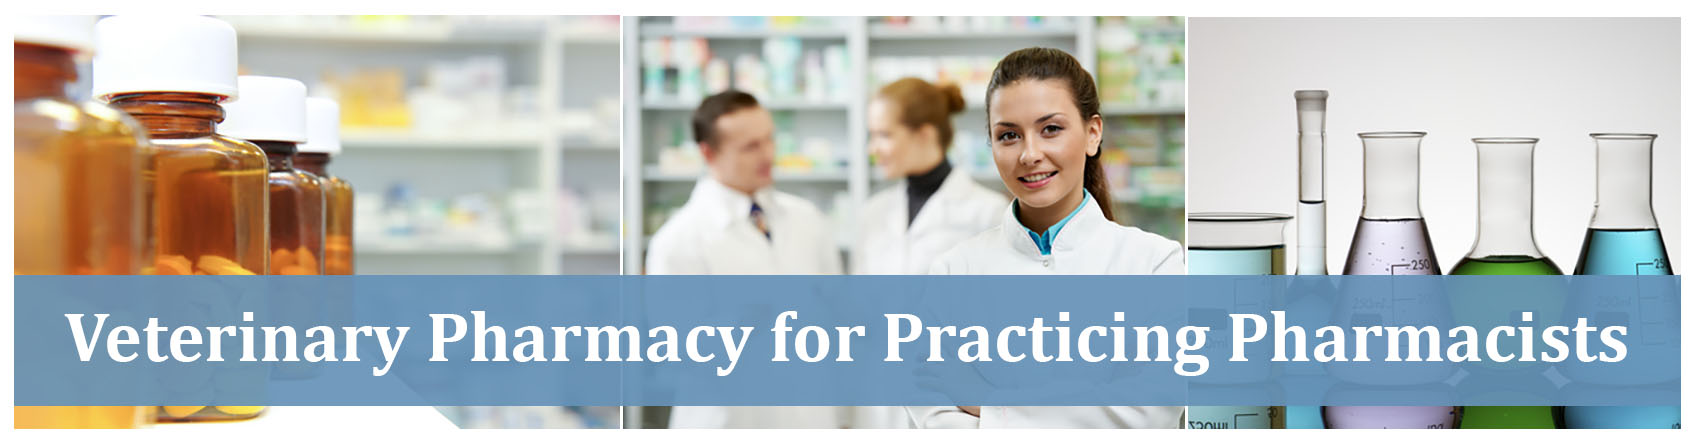 Veterinary Pharmacy for Practicing Pharmacists » Continuing ...